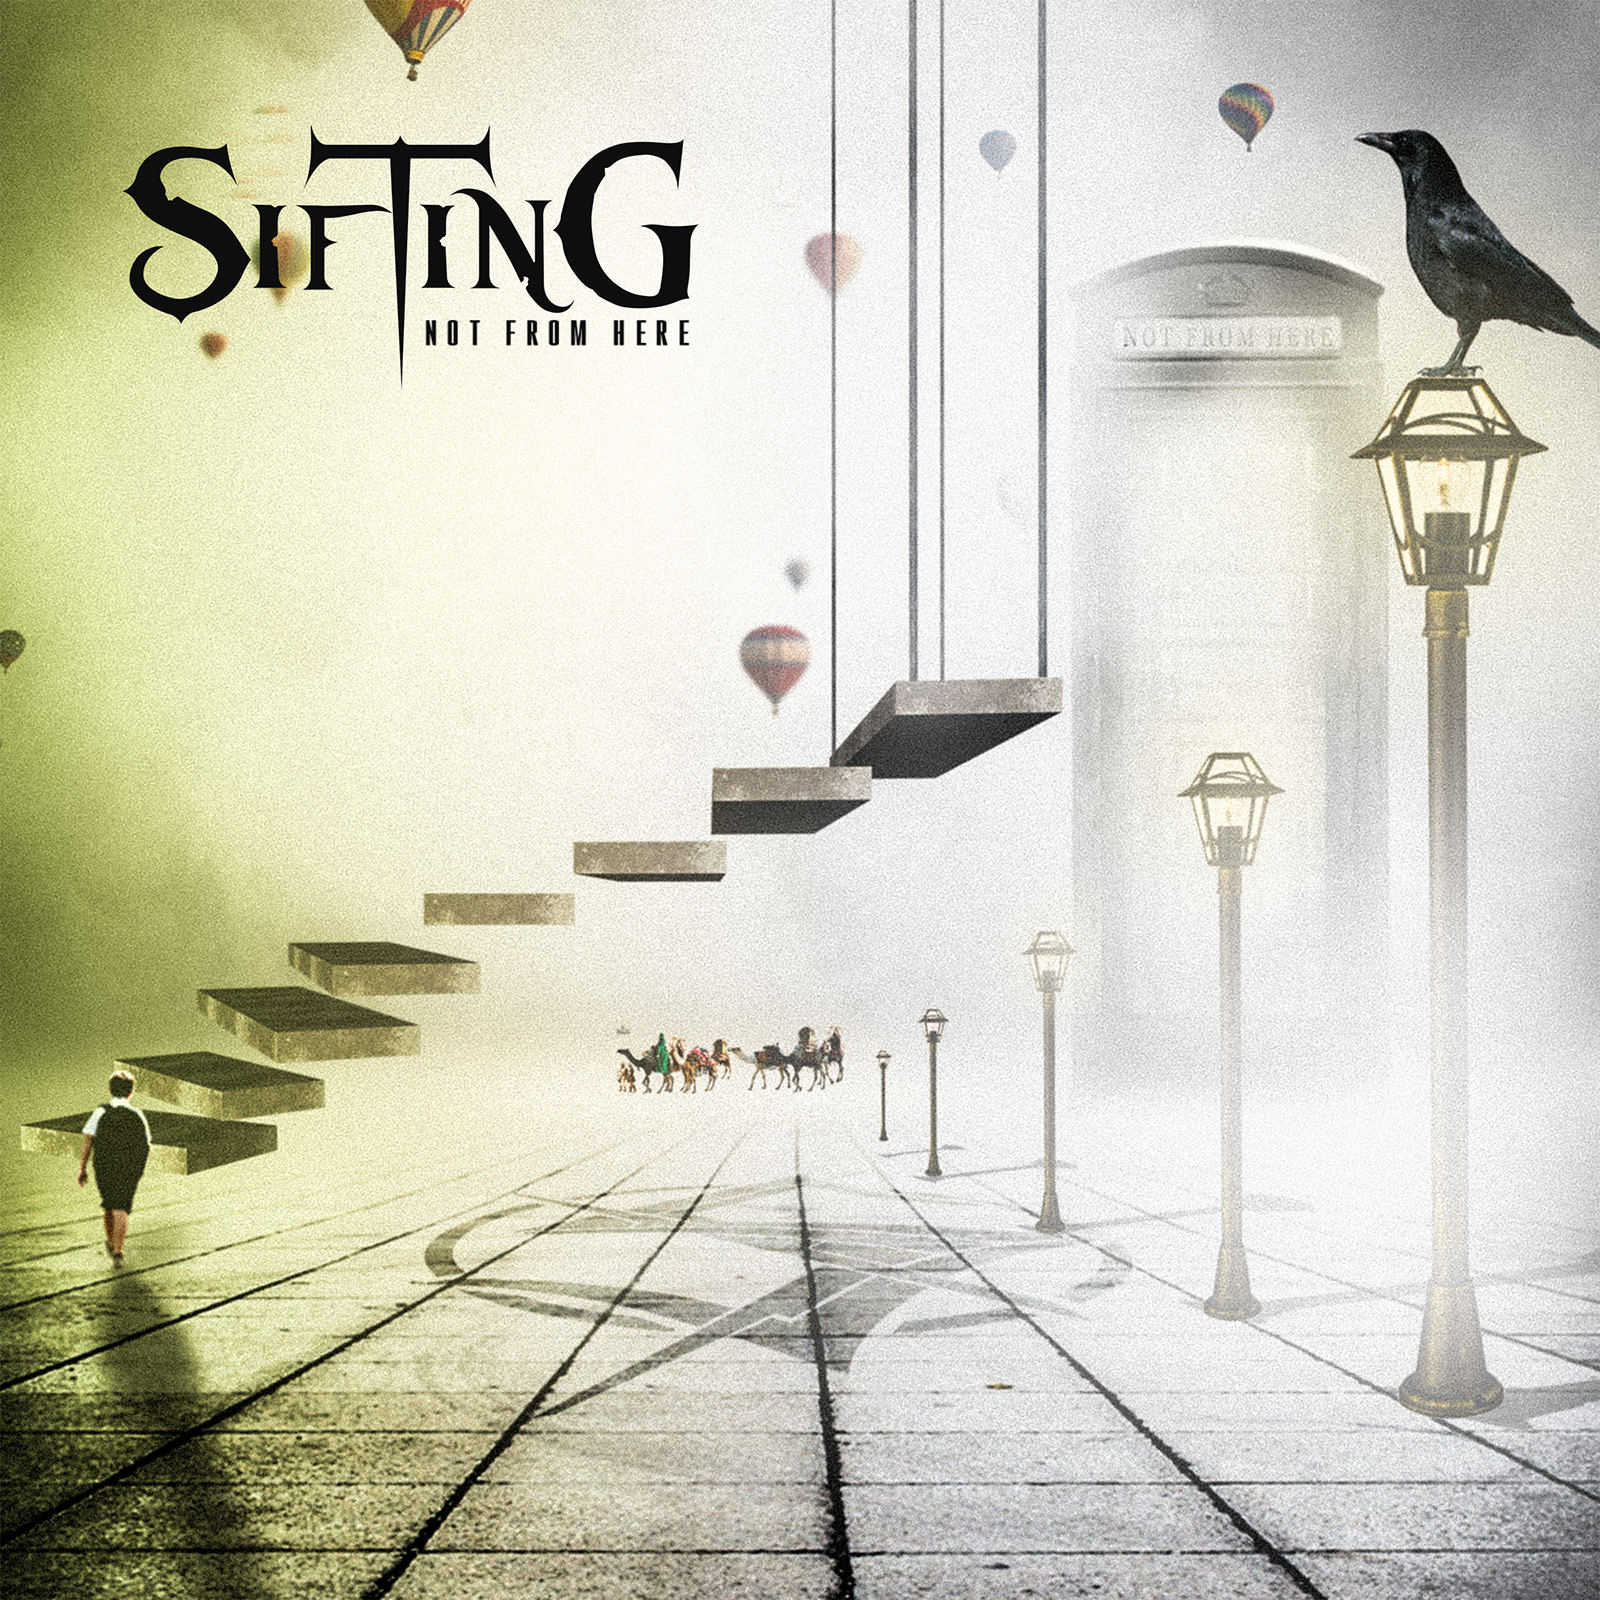 Not-From-Here-Sifting-cover-art